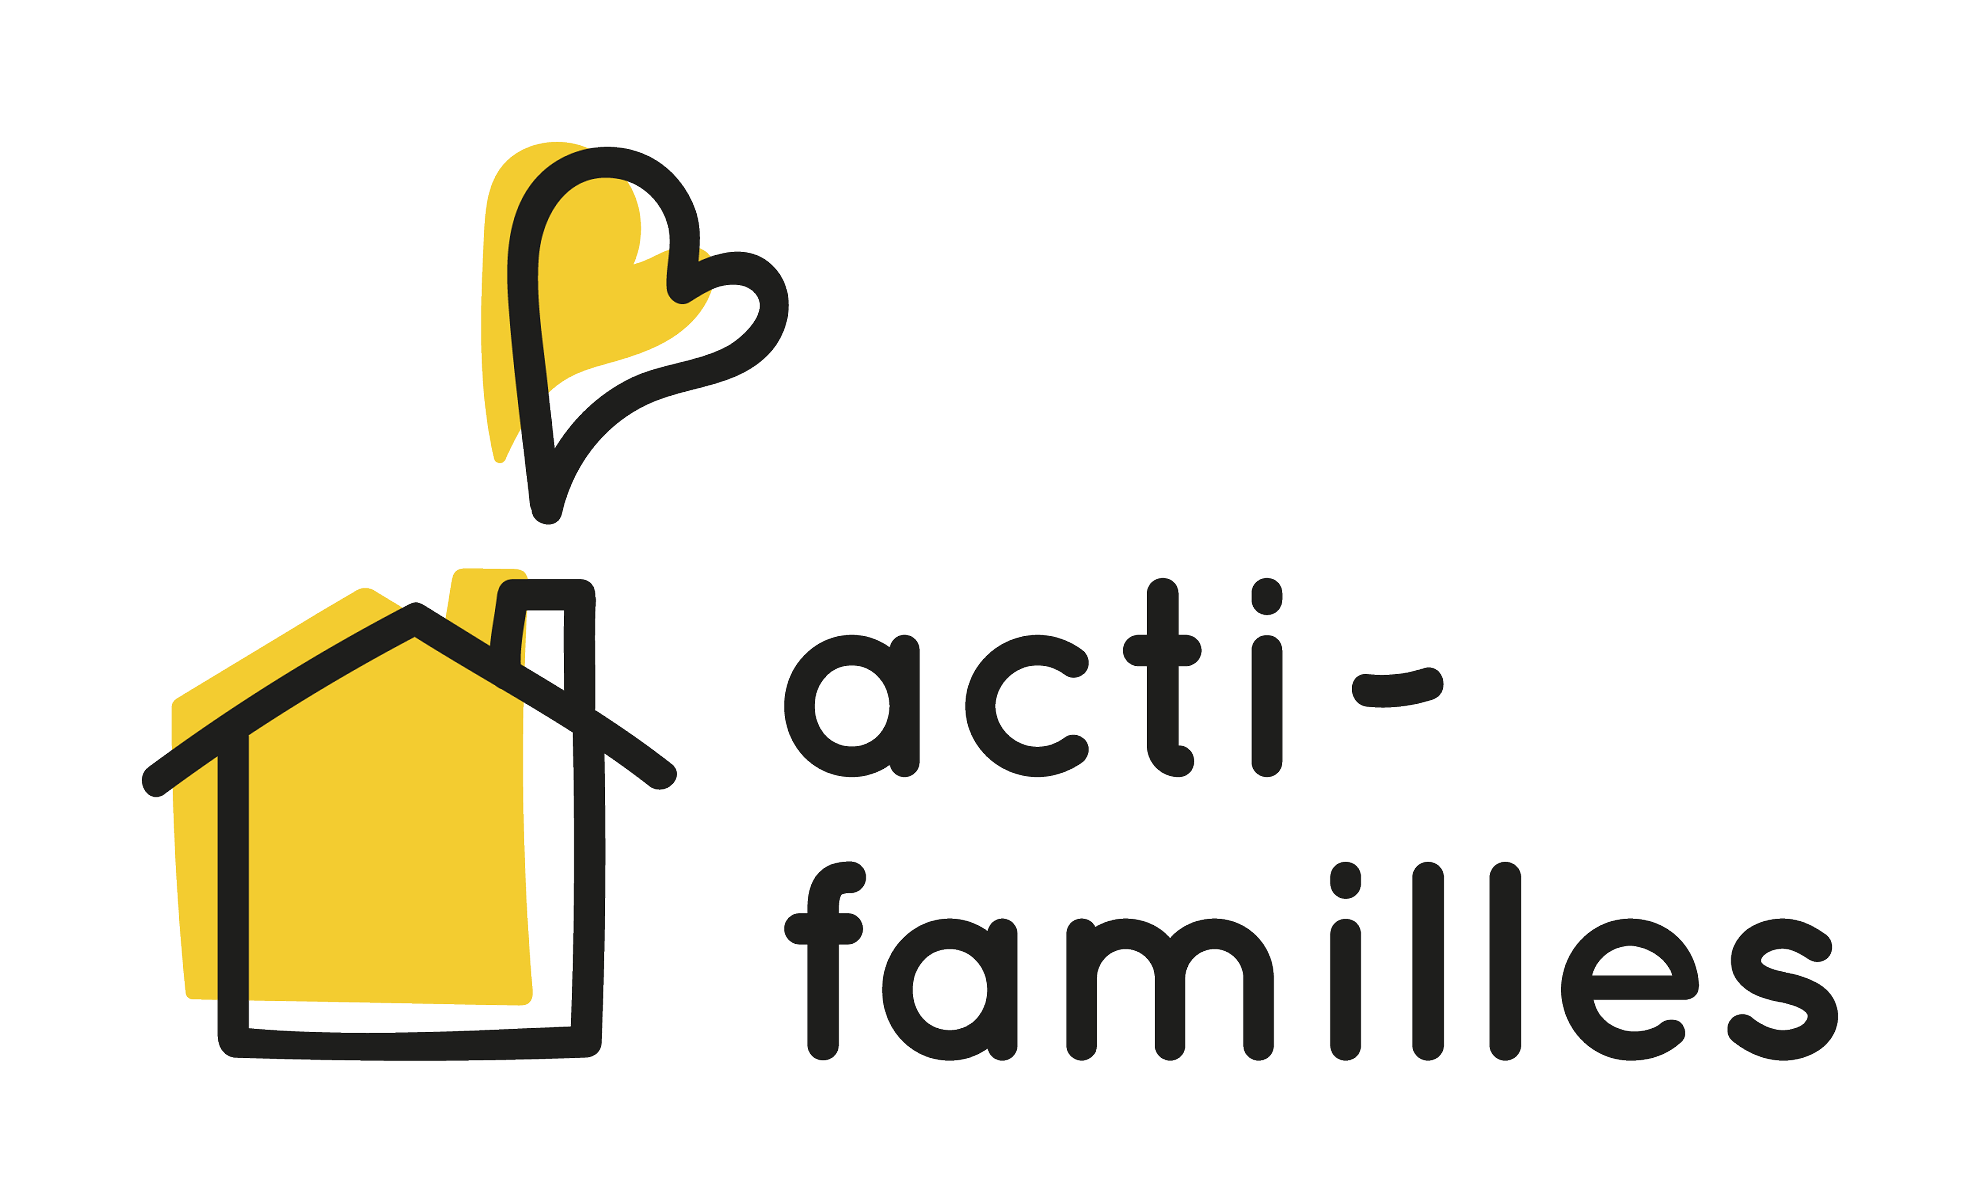 http://cdcgrandesmarees.org/documents/images/2020/logo_acti-familles_png.png